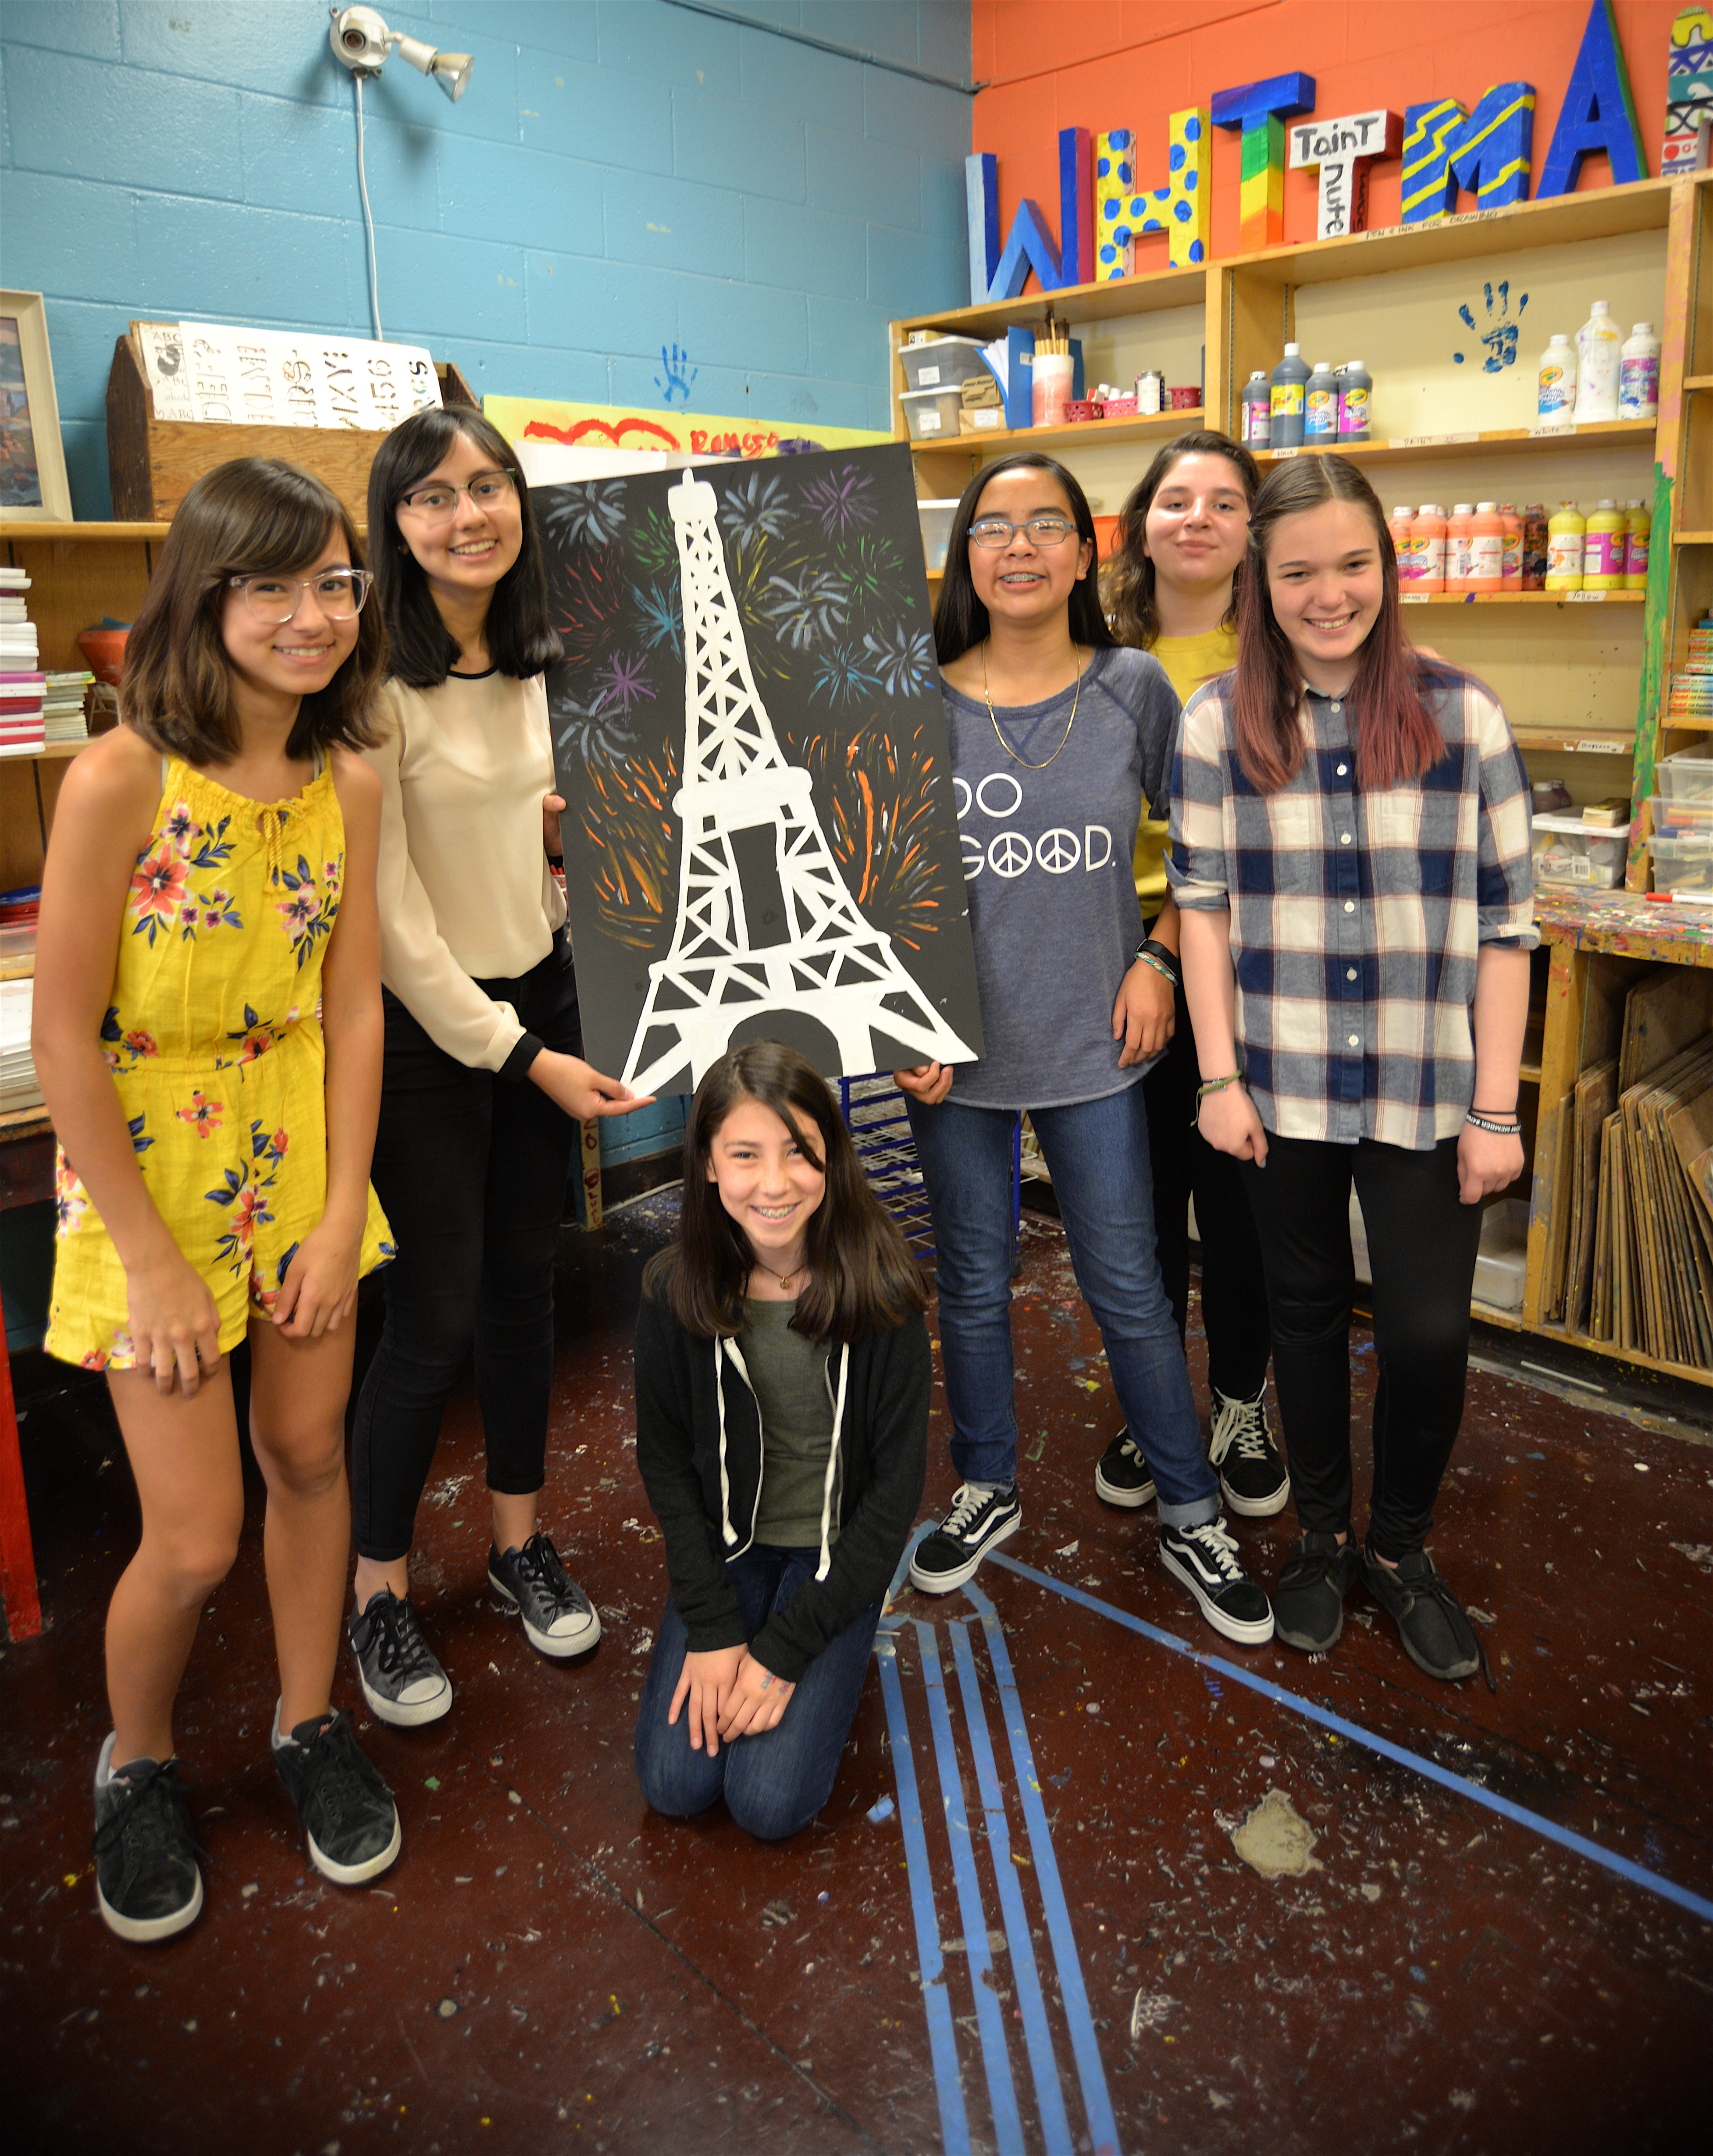 Art club with painting